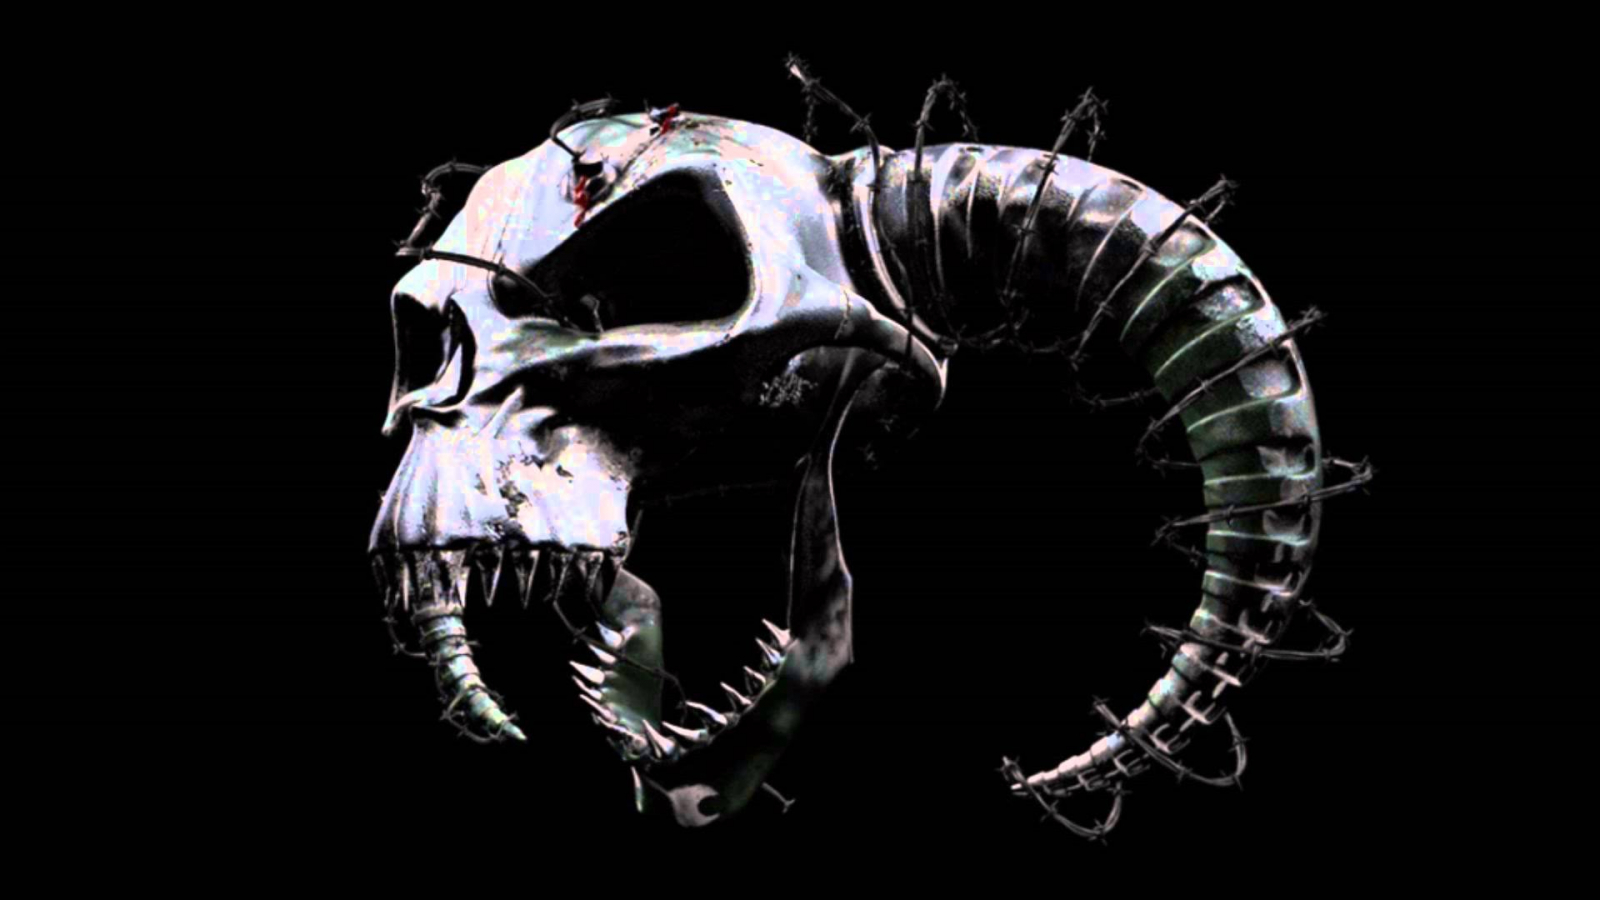 Free Download Angerfist Wallpapers 82 Images In Collection